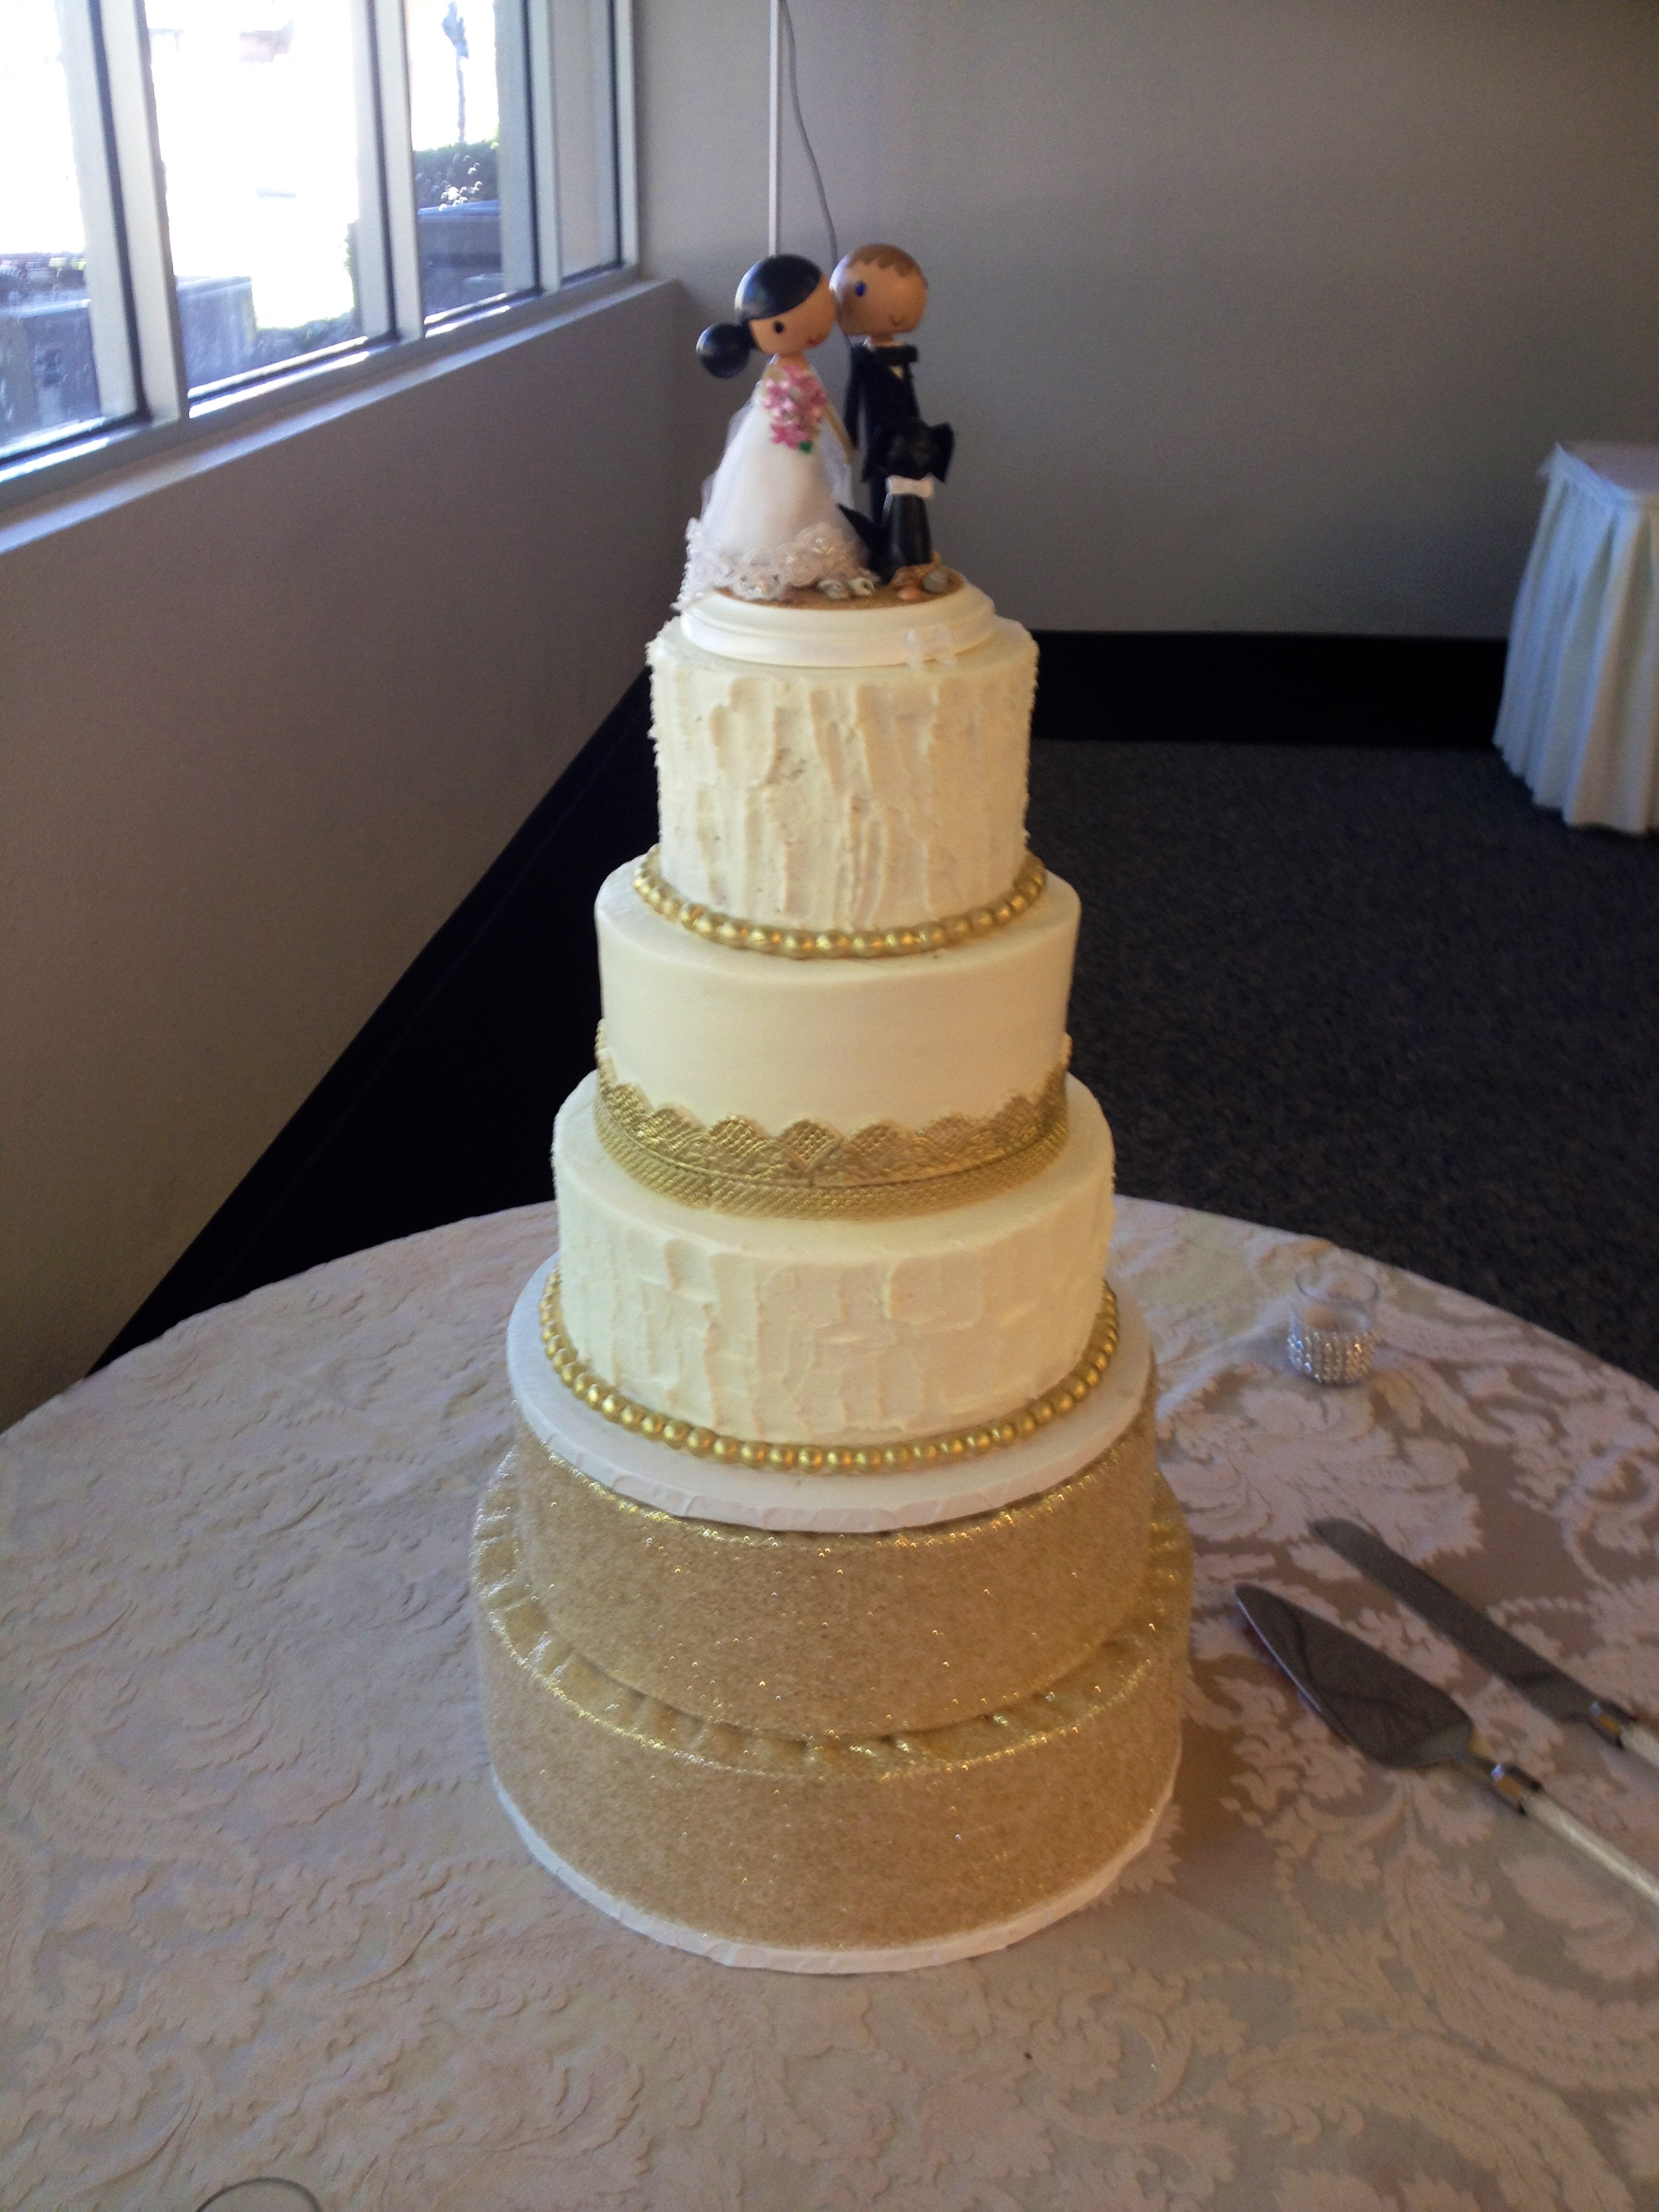 Cakes So Simple Gives Tips And Tricks To Designing Your Wedding Cake Kue By Hbahar Bakery Pal Through We Can Make This Large Happen For You With The Help Of Some Artfully Decorated